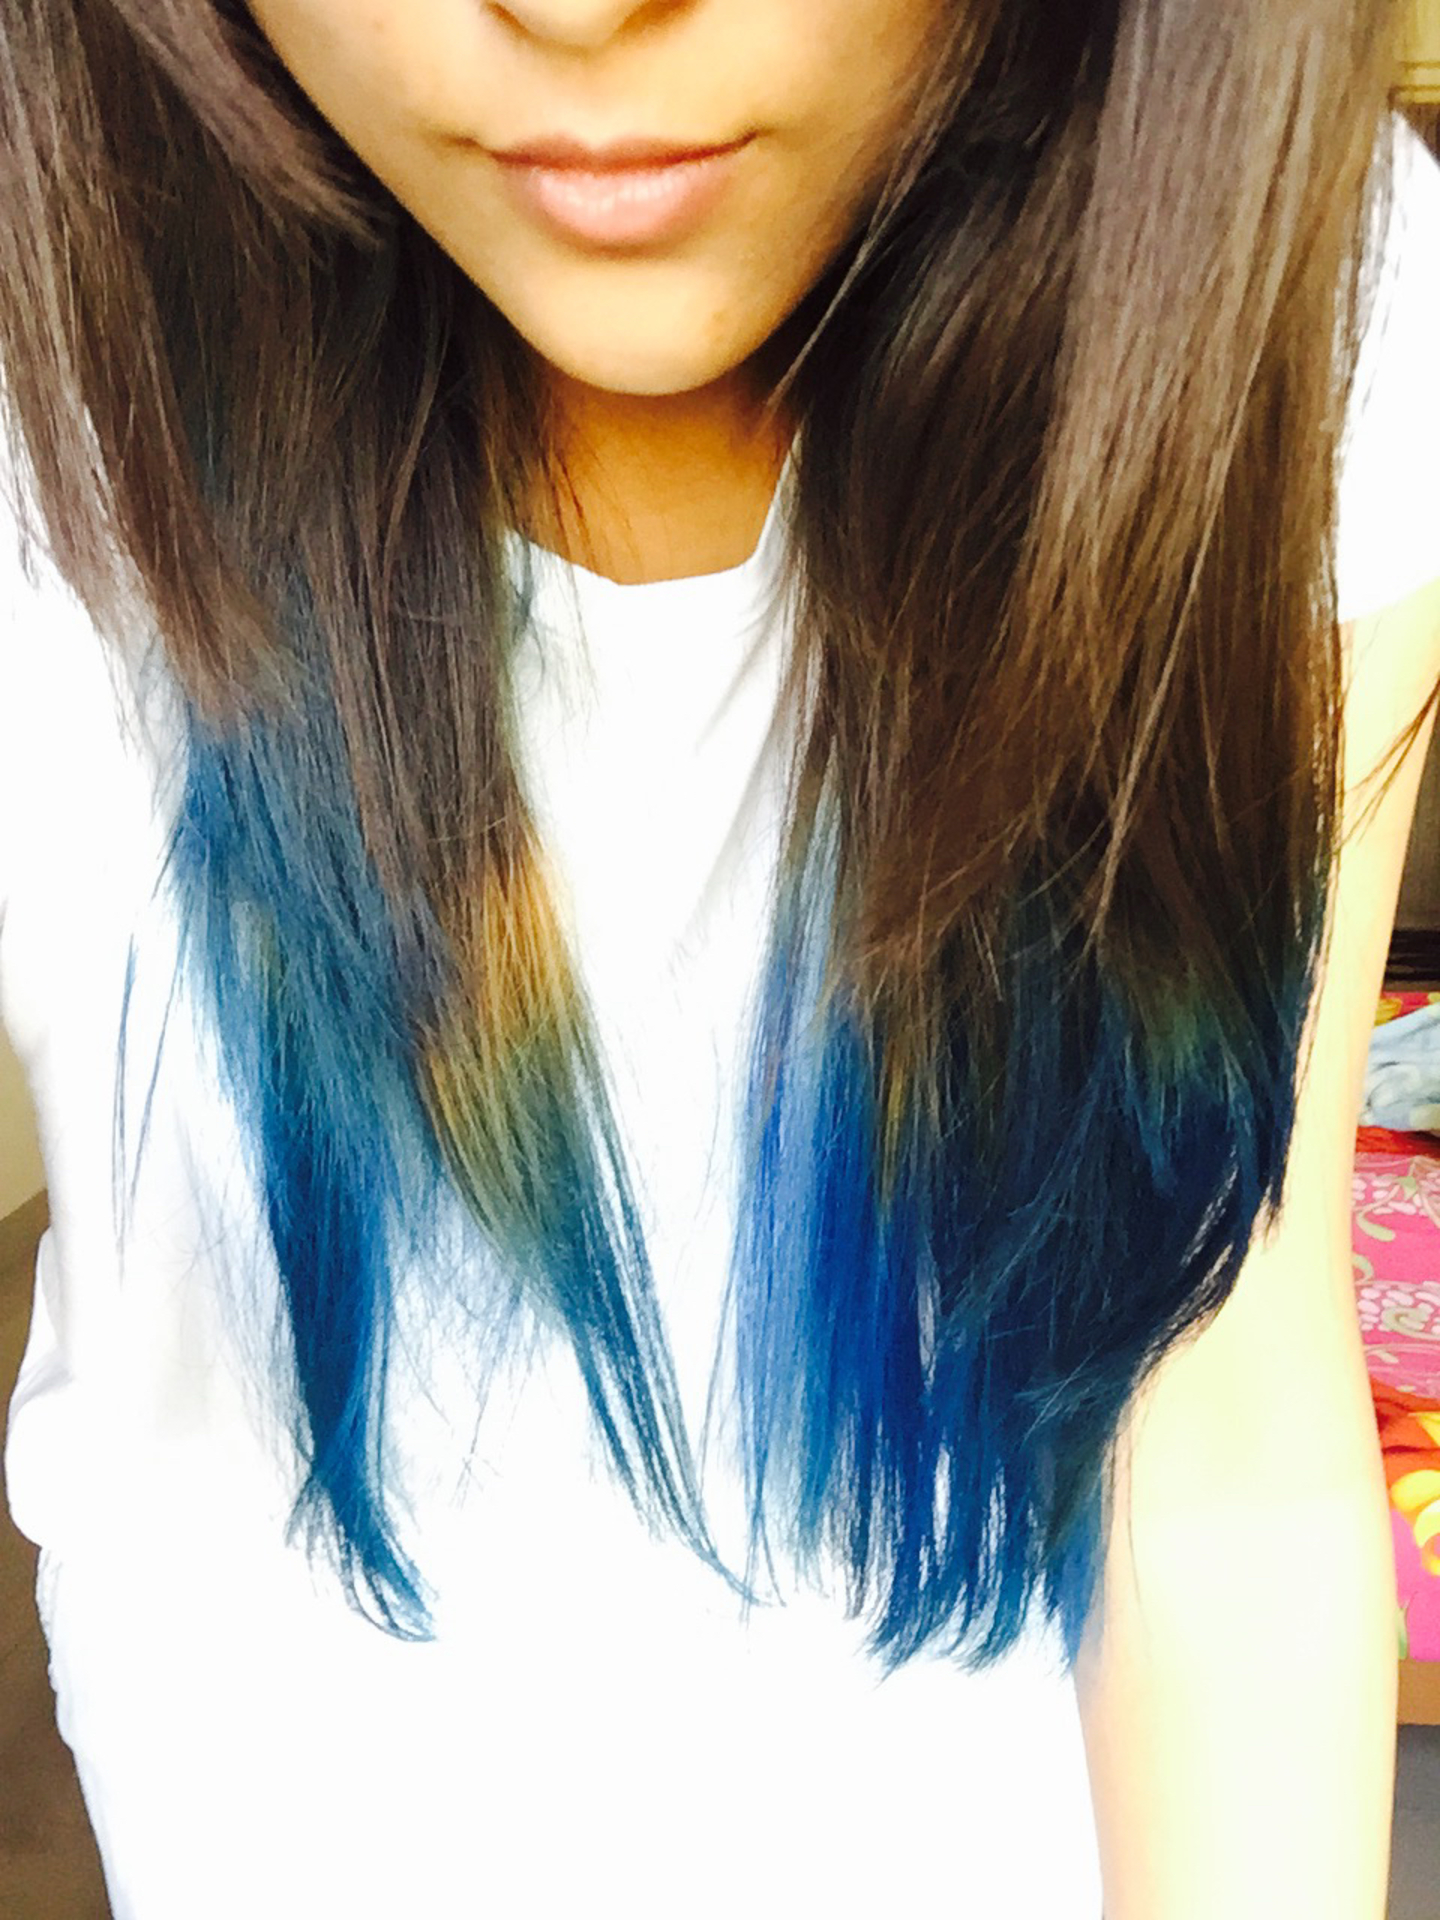 Blue Hair days image